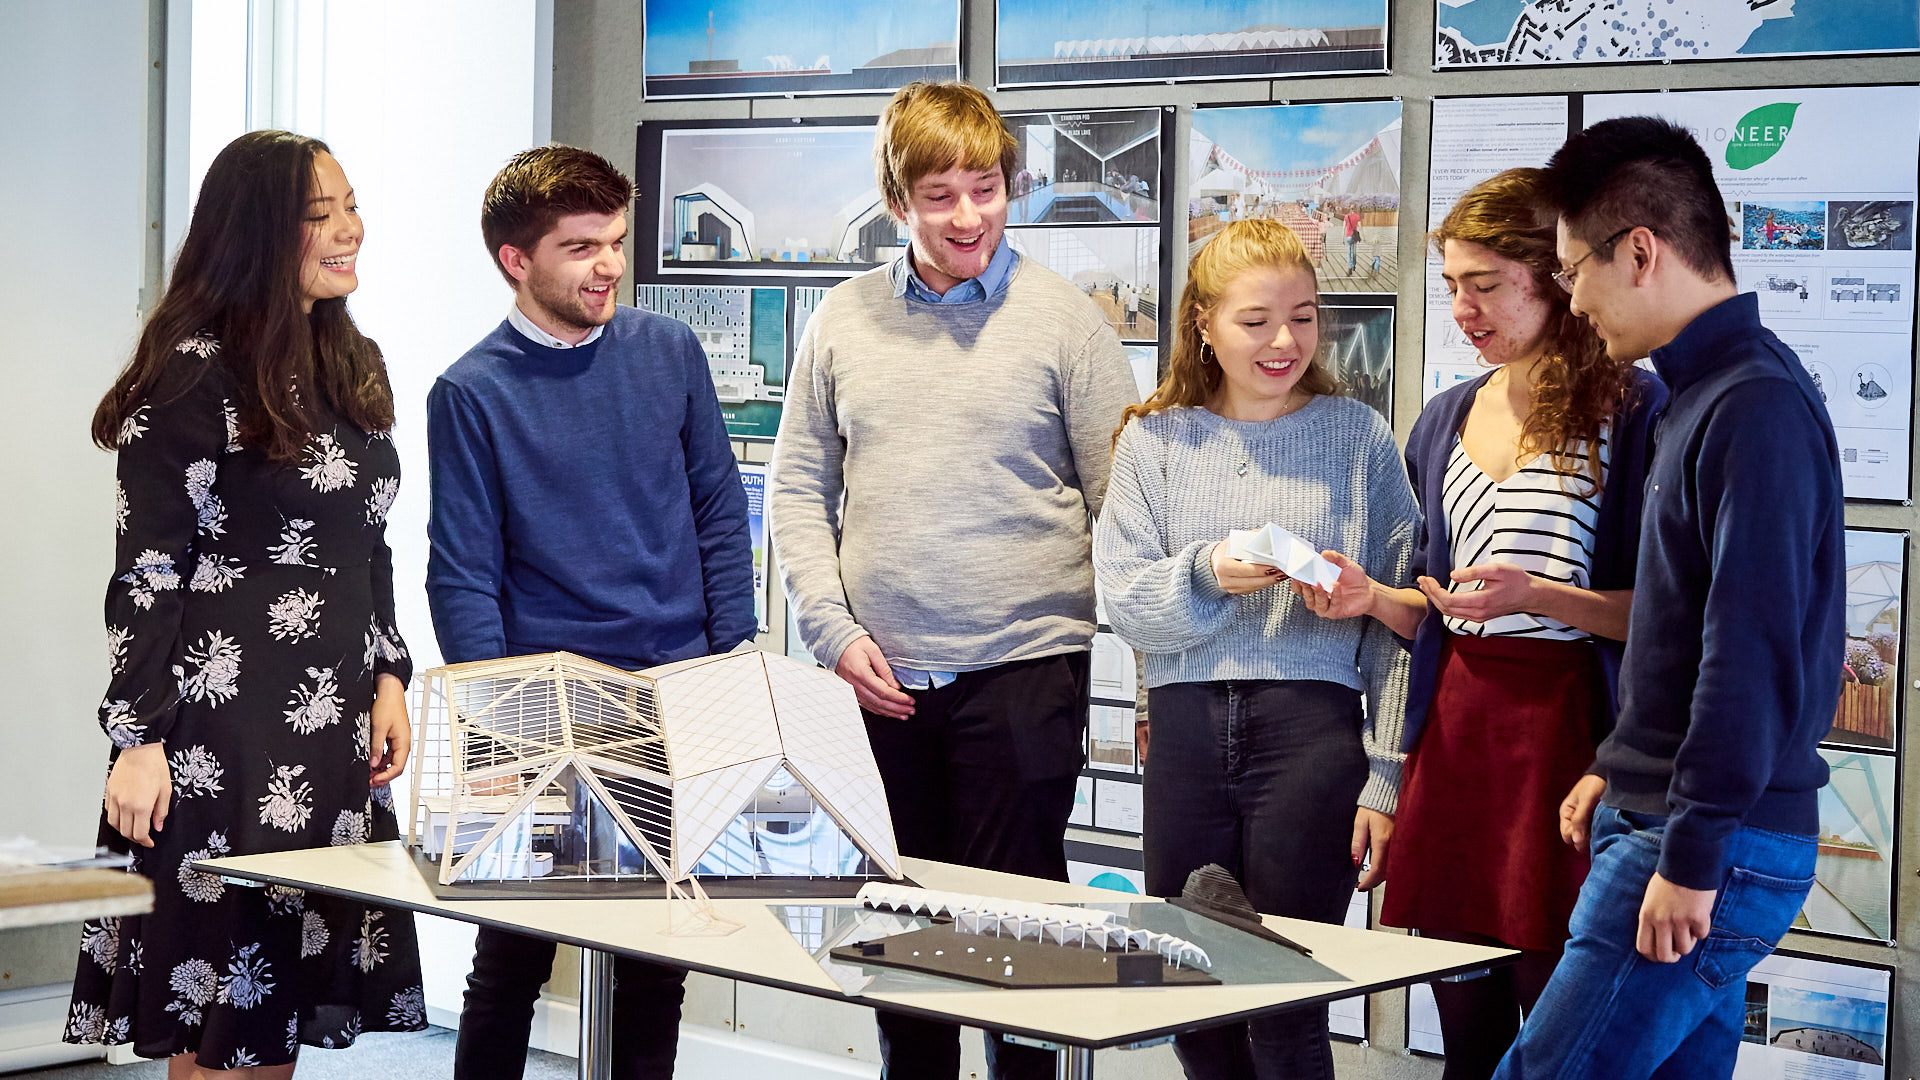 Students from group 2 of this year's Basil Spence competition discuss a model of their project to design a temporary exhibition pavilion for Weymouth